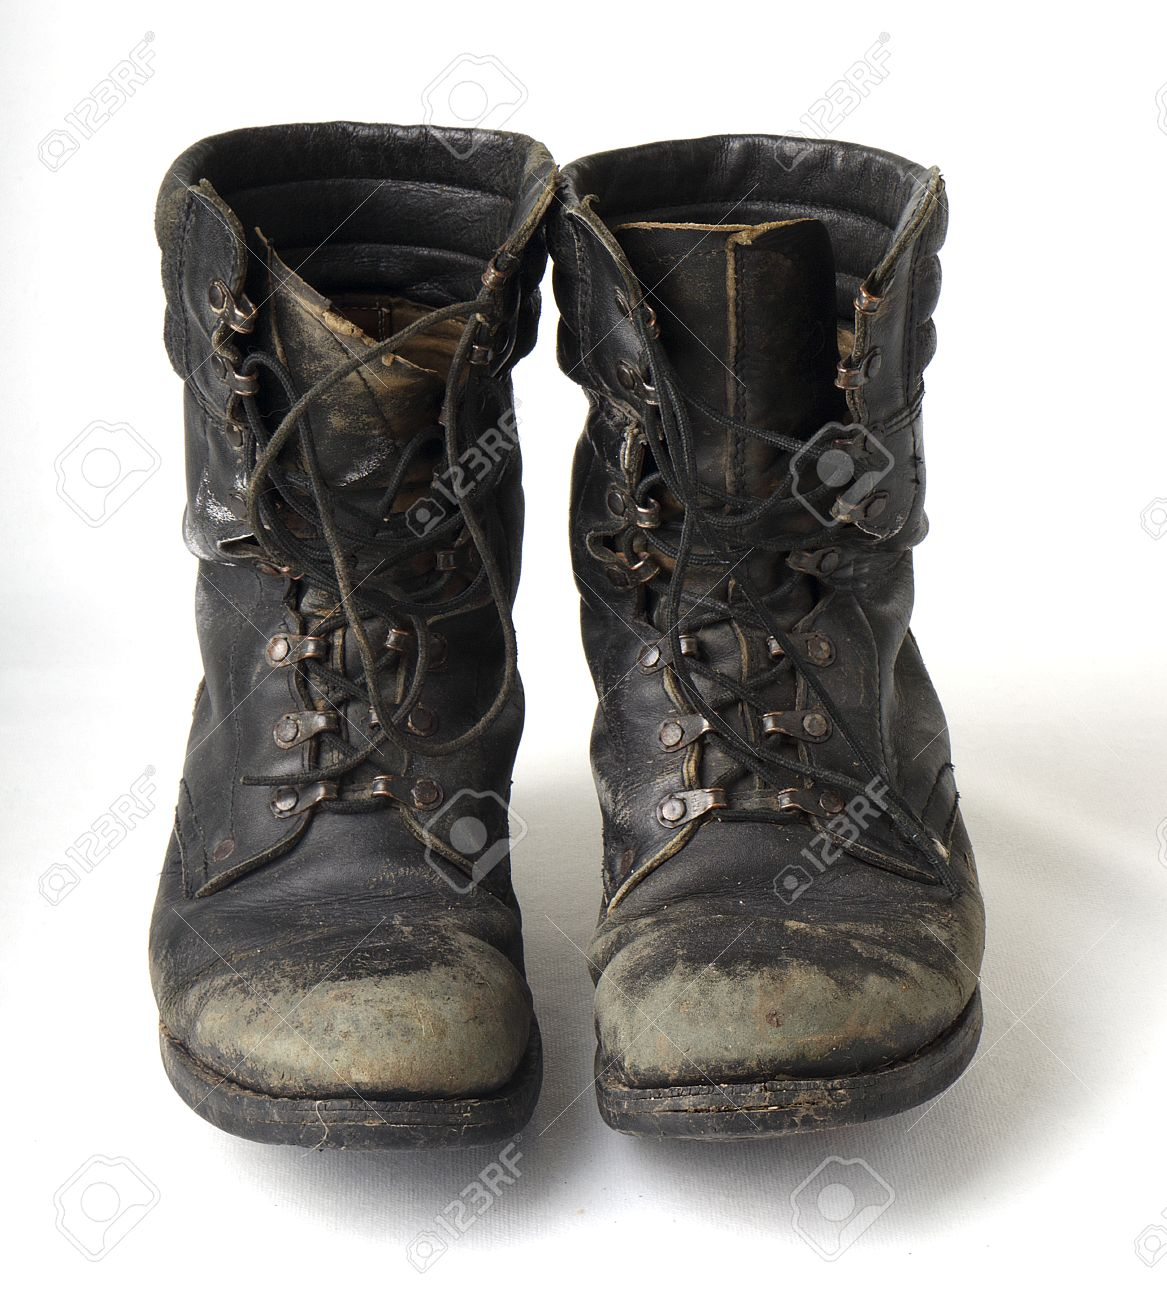 Black old military boots completely worn out Stock Photo - 55396352 075a4d2b635